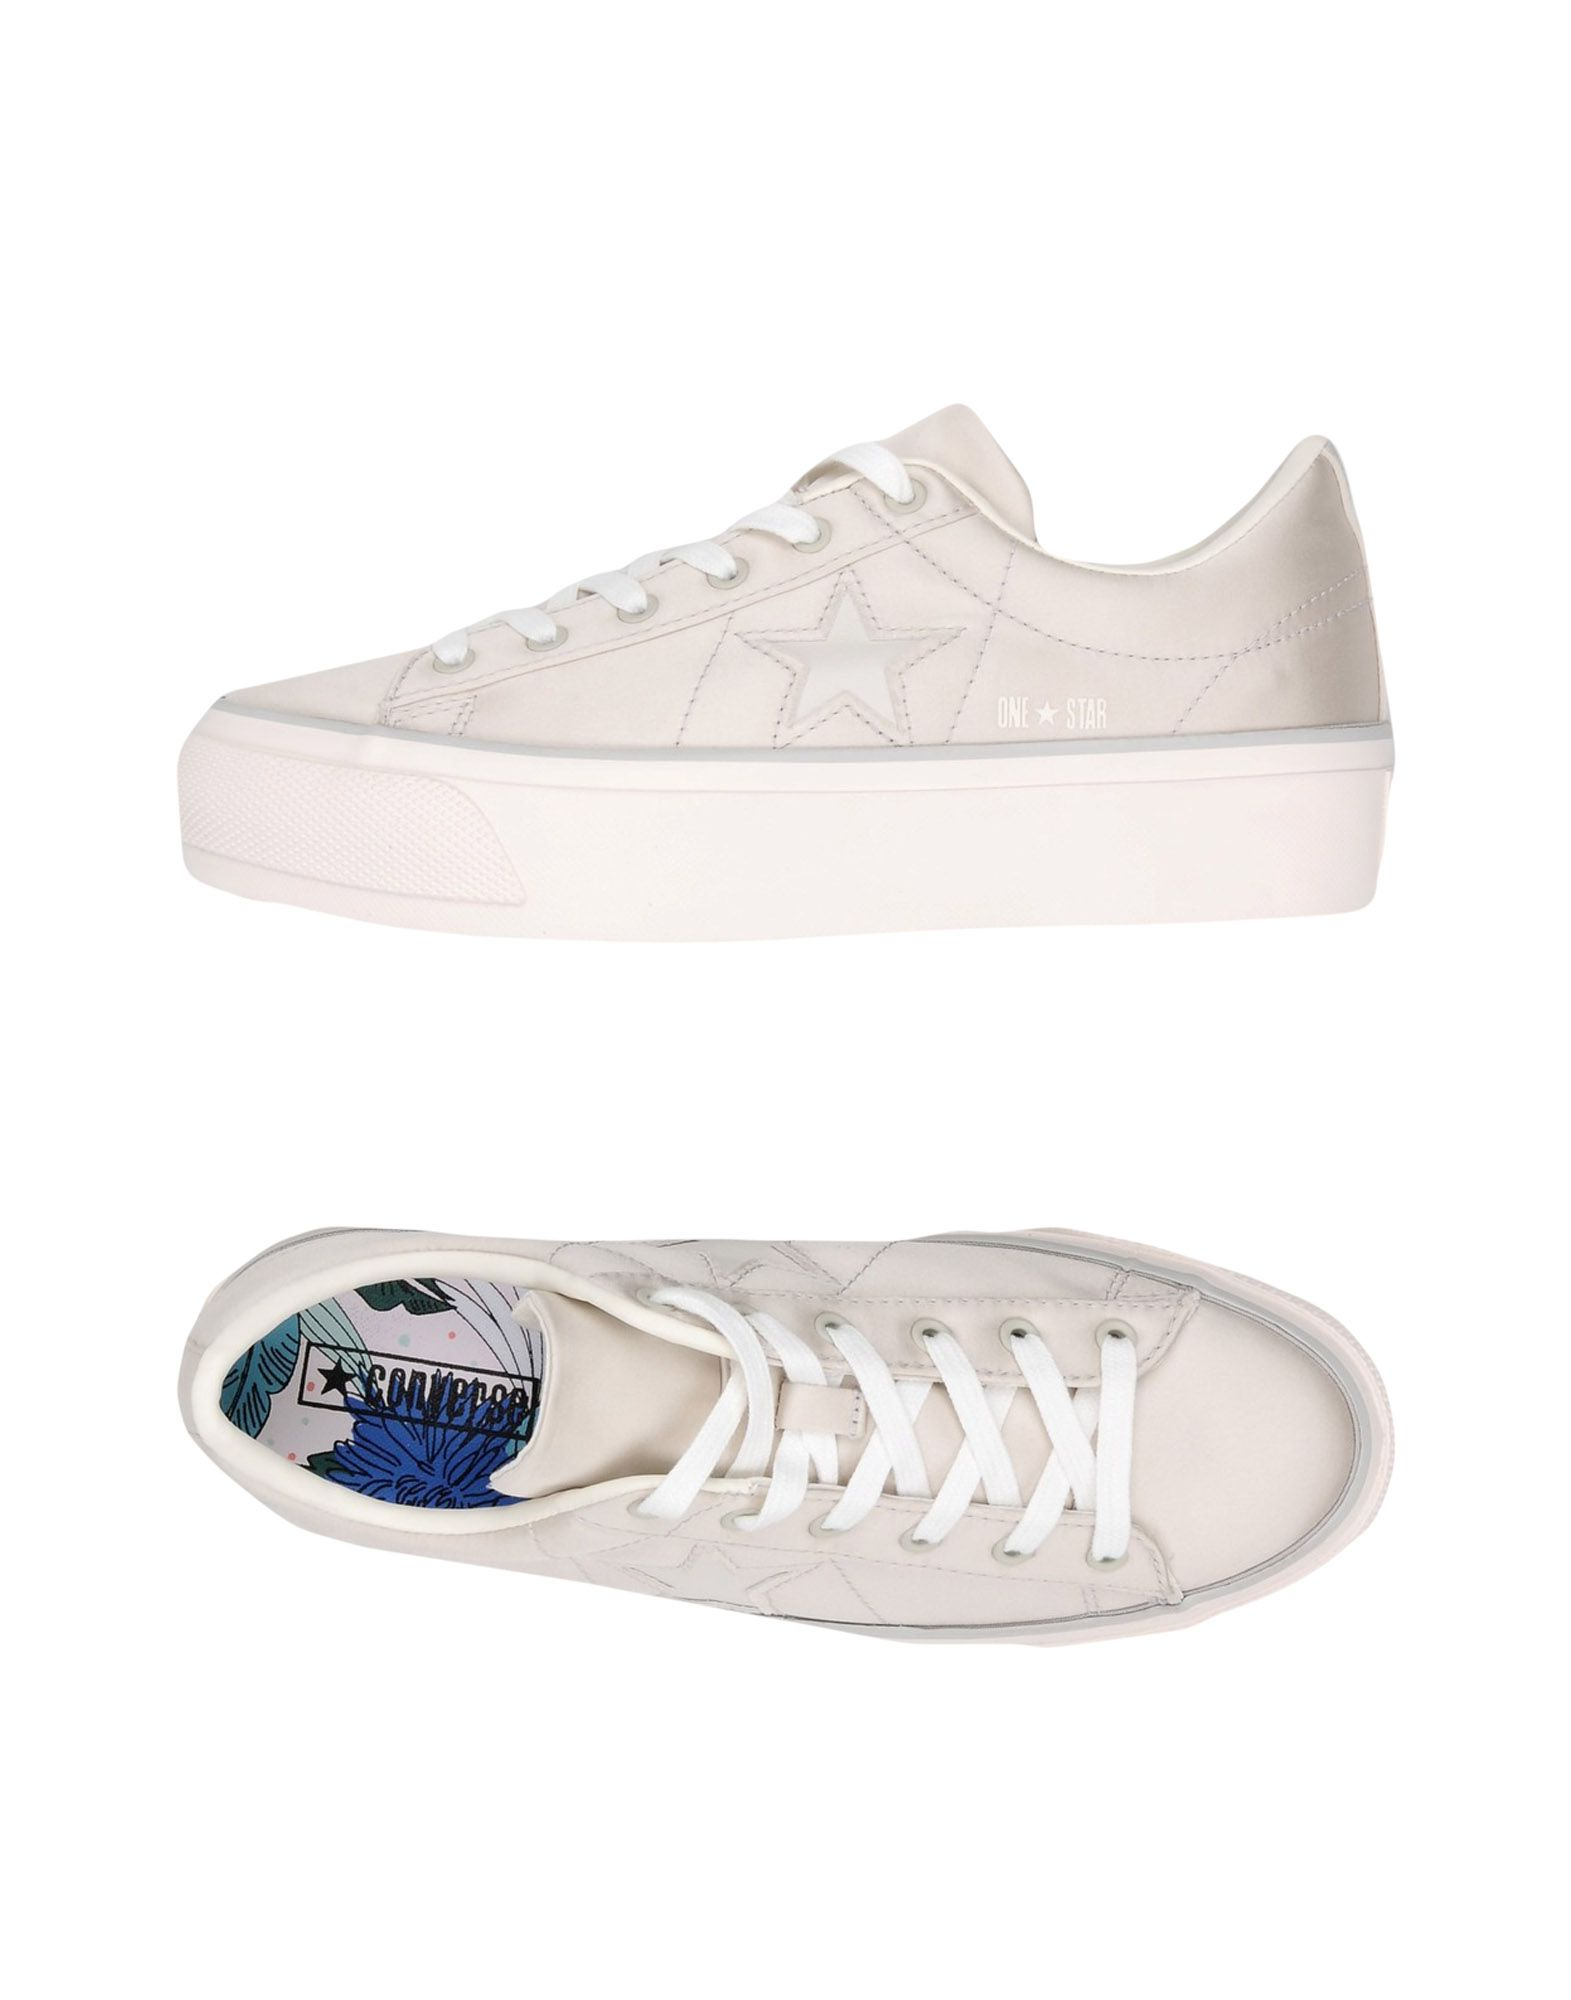 Acquista All su Satin Sneakers Converse One Star Platform Star Donna online 5x8xqwvSA